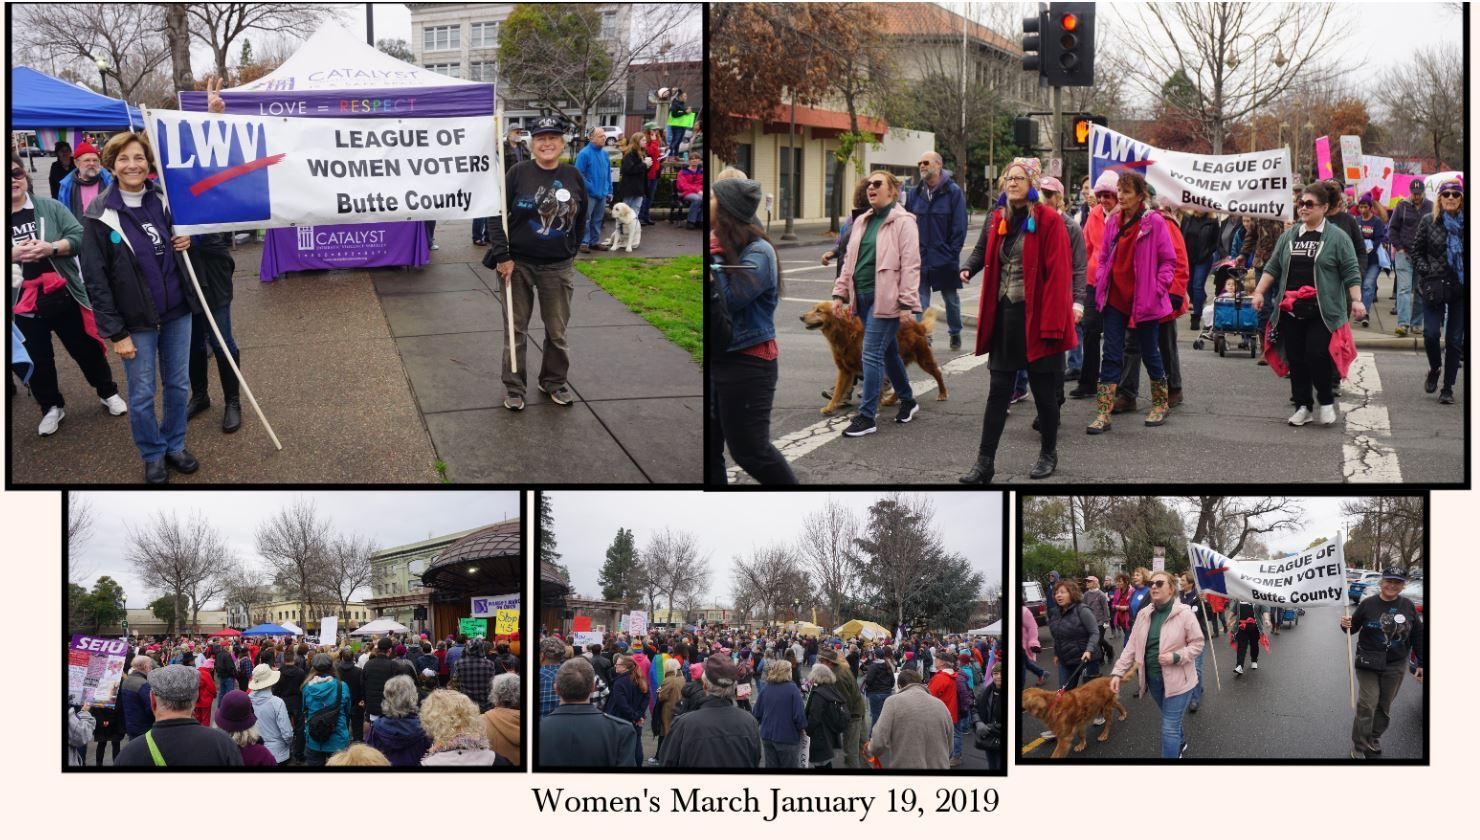 Women's March January 2019